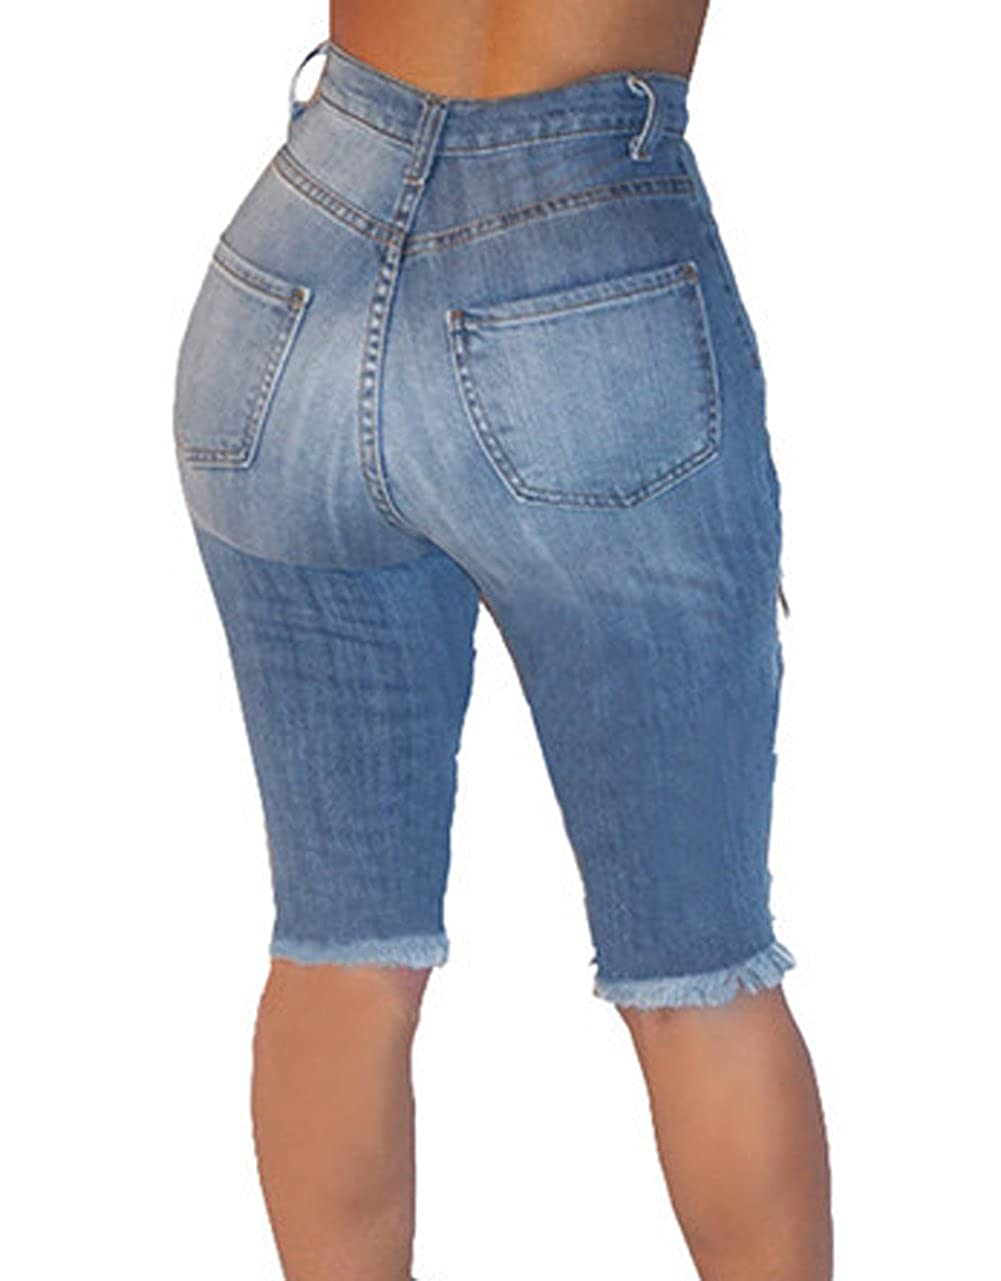 316a0b6d6 Universalgoods Womens Casual Denim Destroyed Bermuda Shorts Jeans Ripped  Knee Length at Amazon Women's Clothing store: